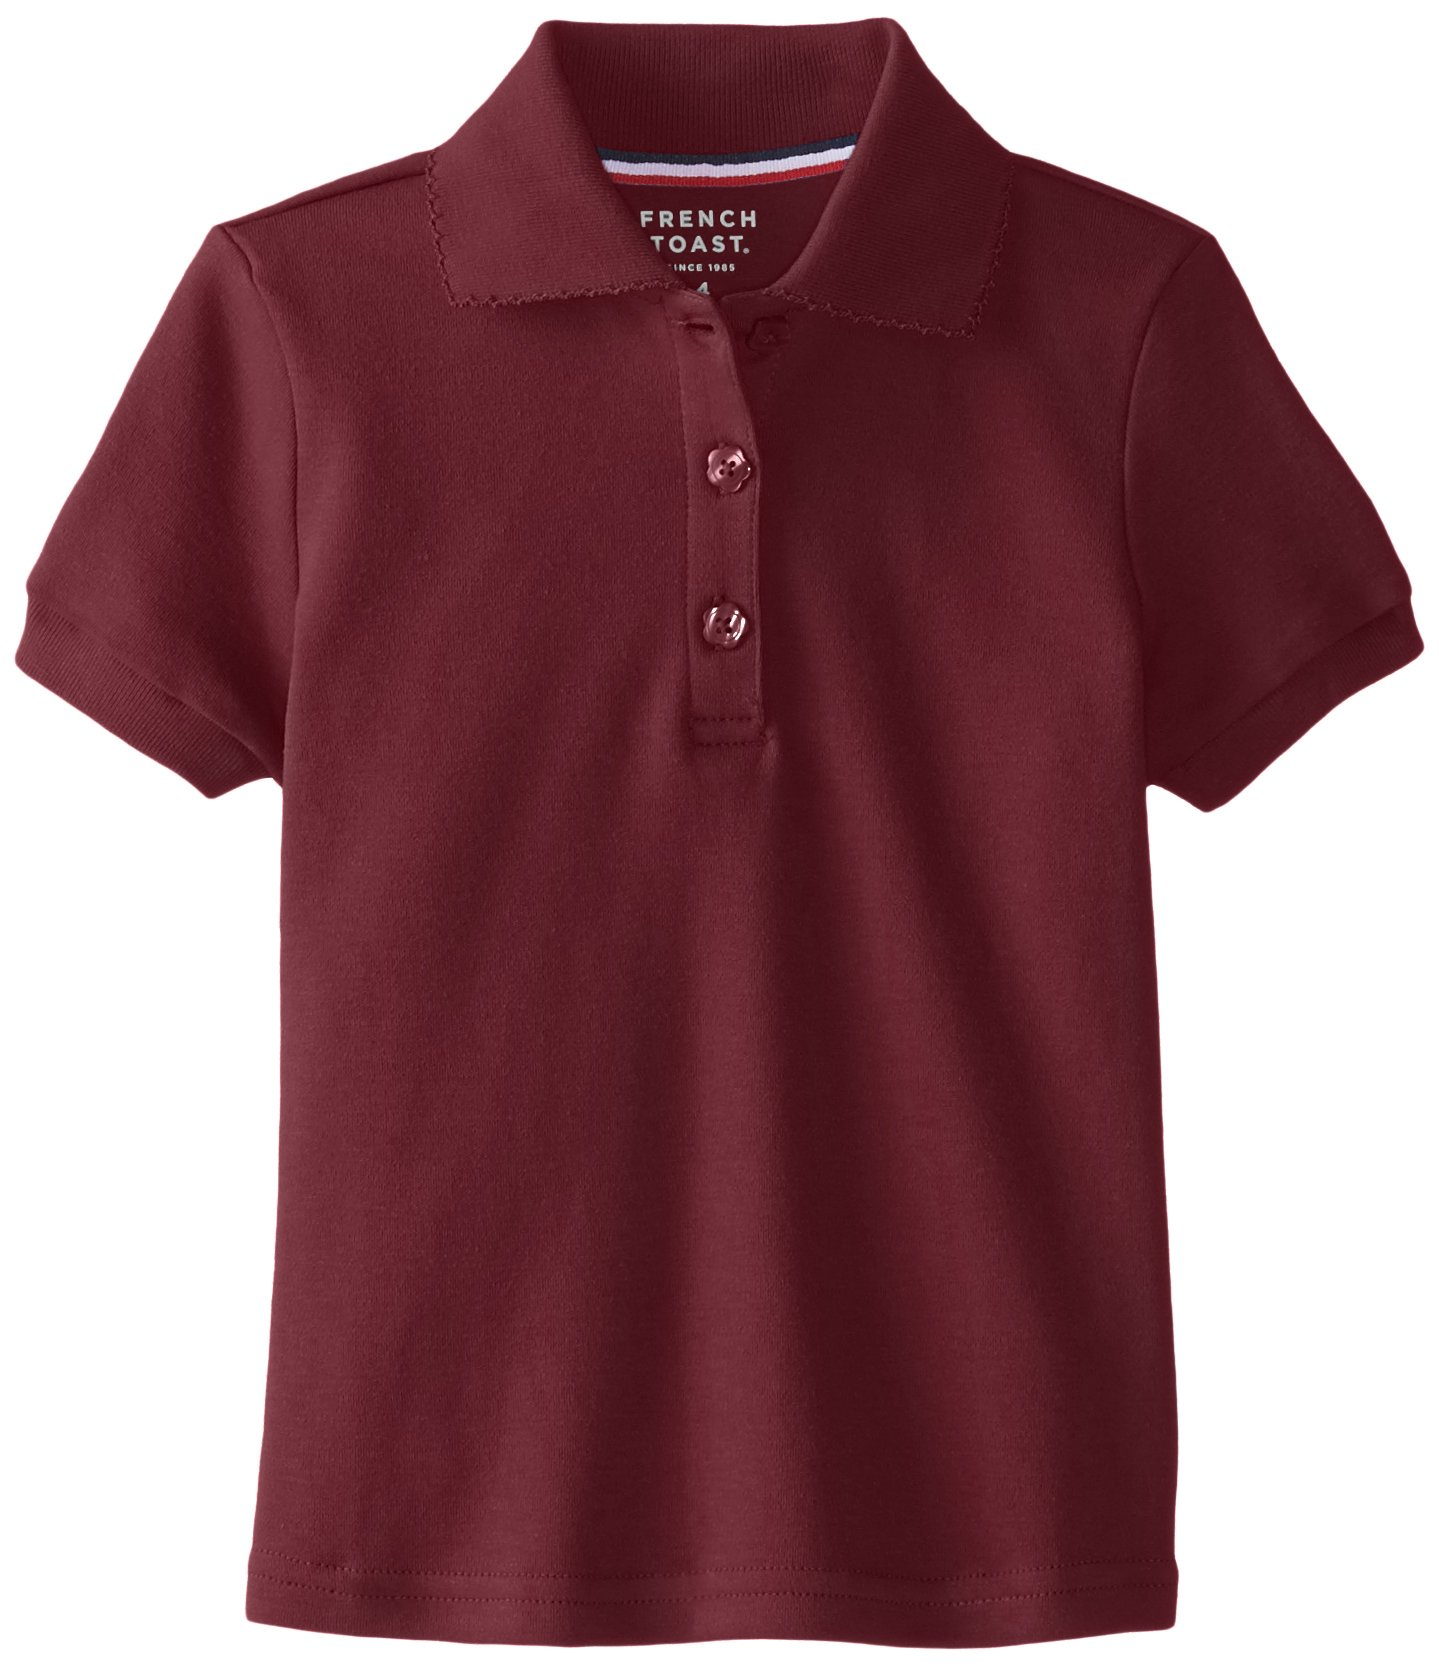 French Toast Little Girls' Short Sleeve Interlock Polo With Picot Collar, Burgundy, 6X